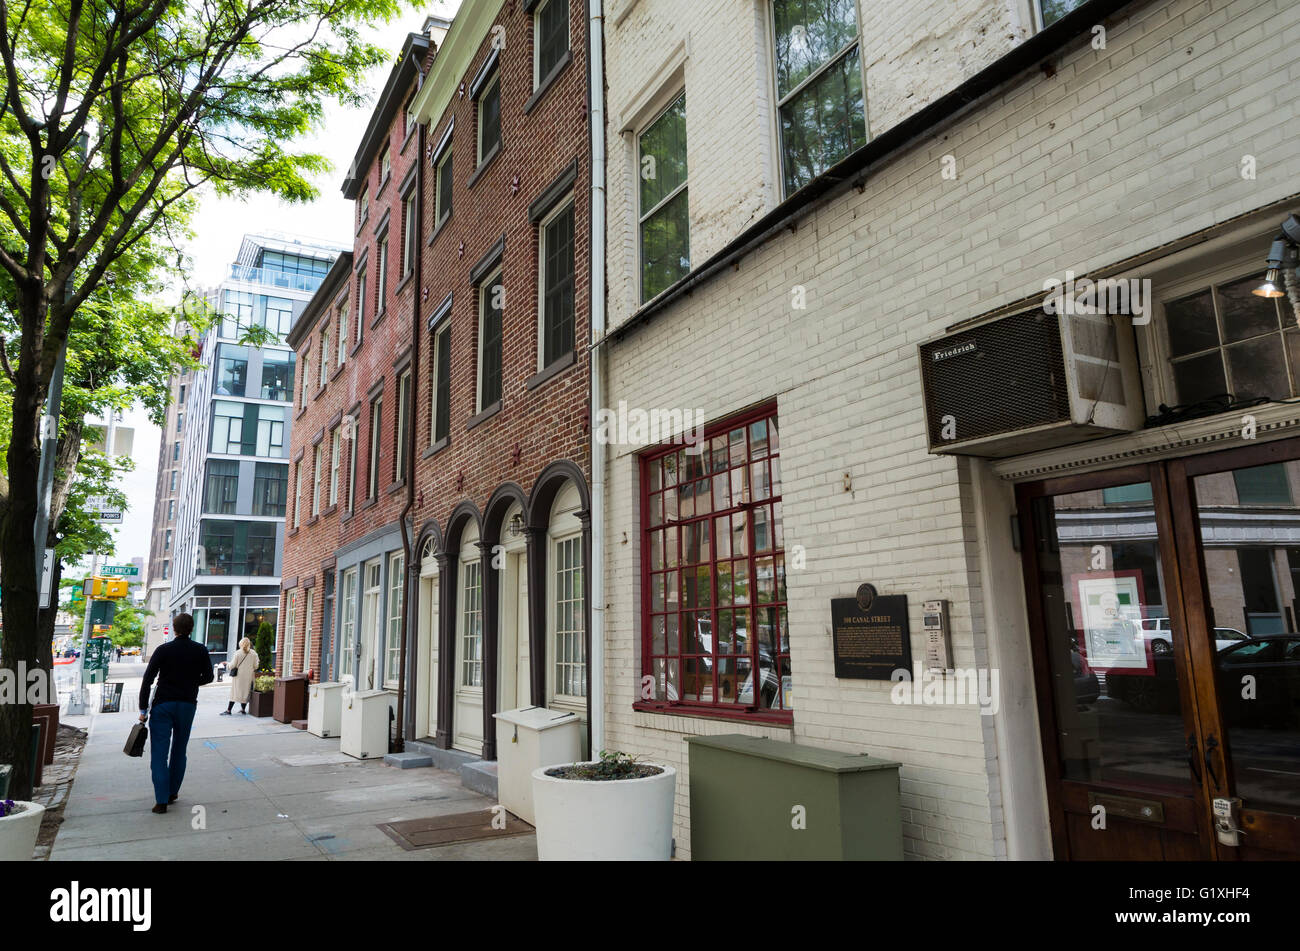 Street view of landmarked early 19th Century brick houses on Canal Street in New York City Stock Photo